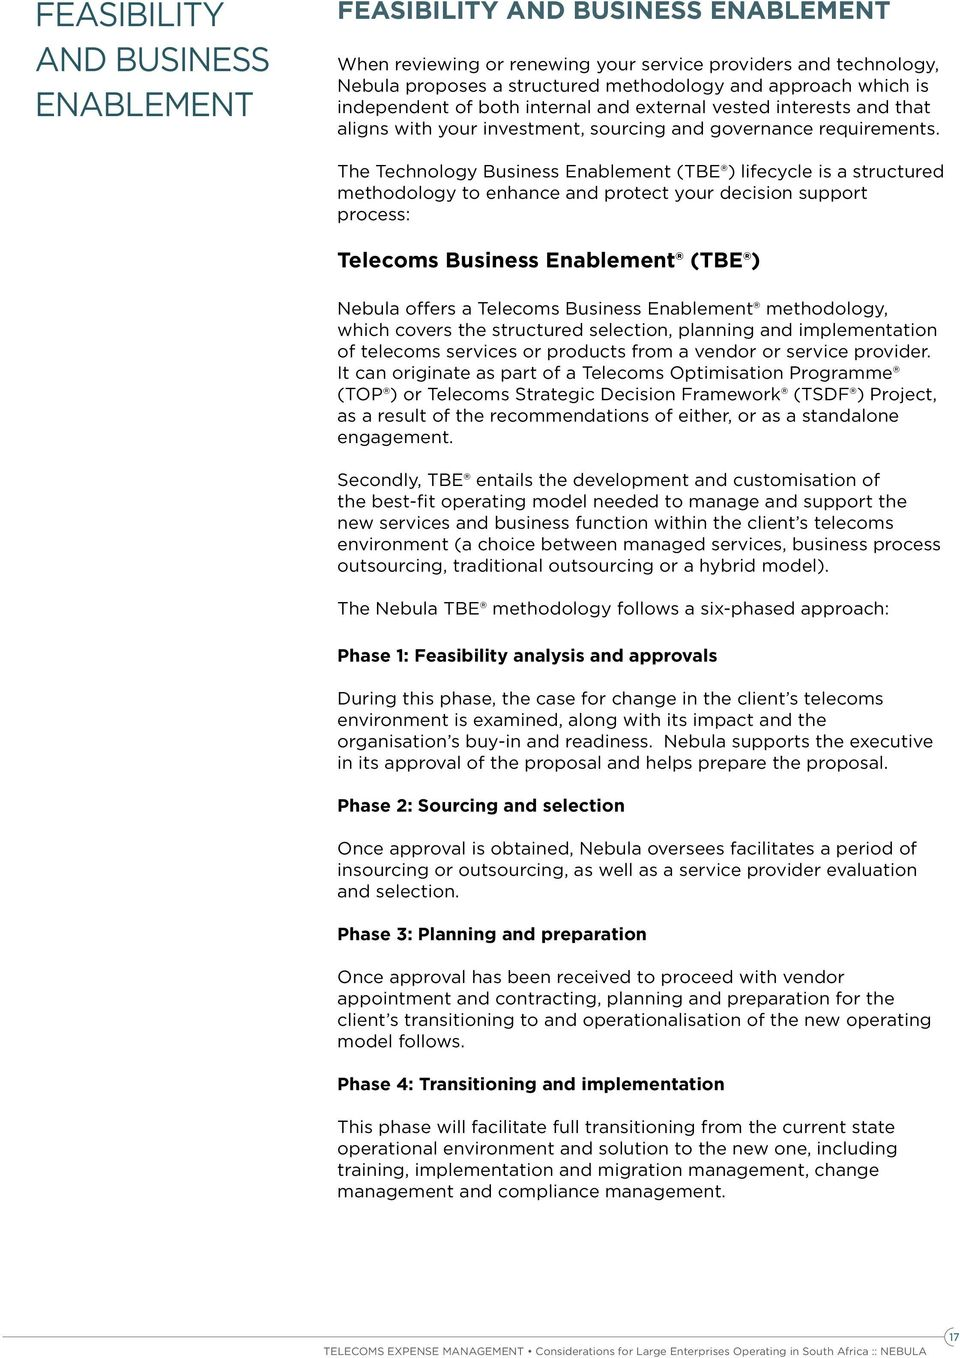 The Technology Business Enablement (TBE ) lifecycle is a structured methodology to enhance and protect your decision support process: Telecoms Business Enablement (TBE ) Nebula offers a Telecoms